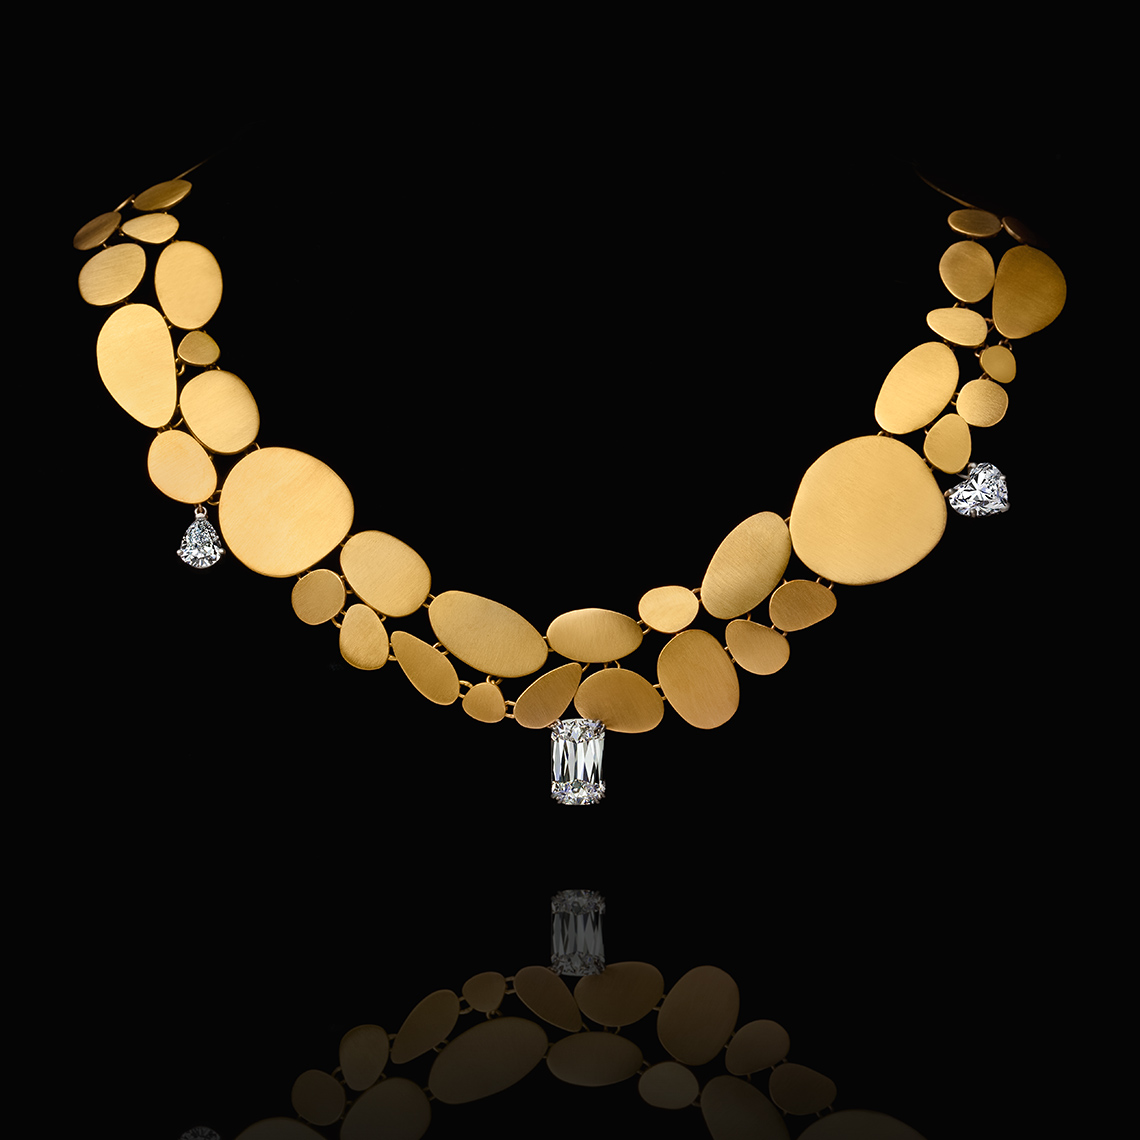 NECKLACE_RENEE_BLACK_2016_WEB